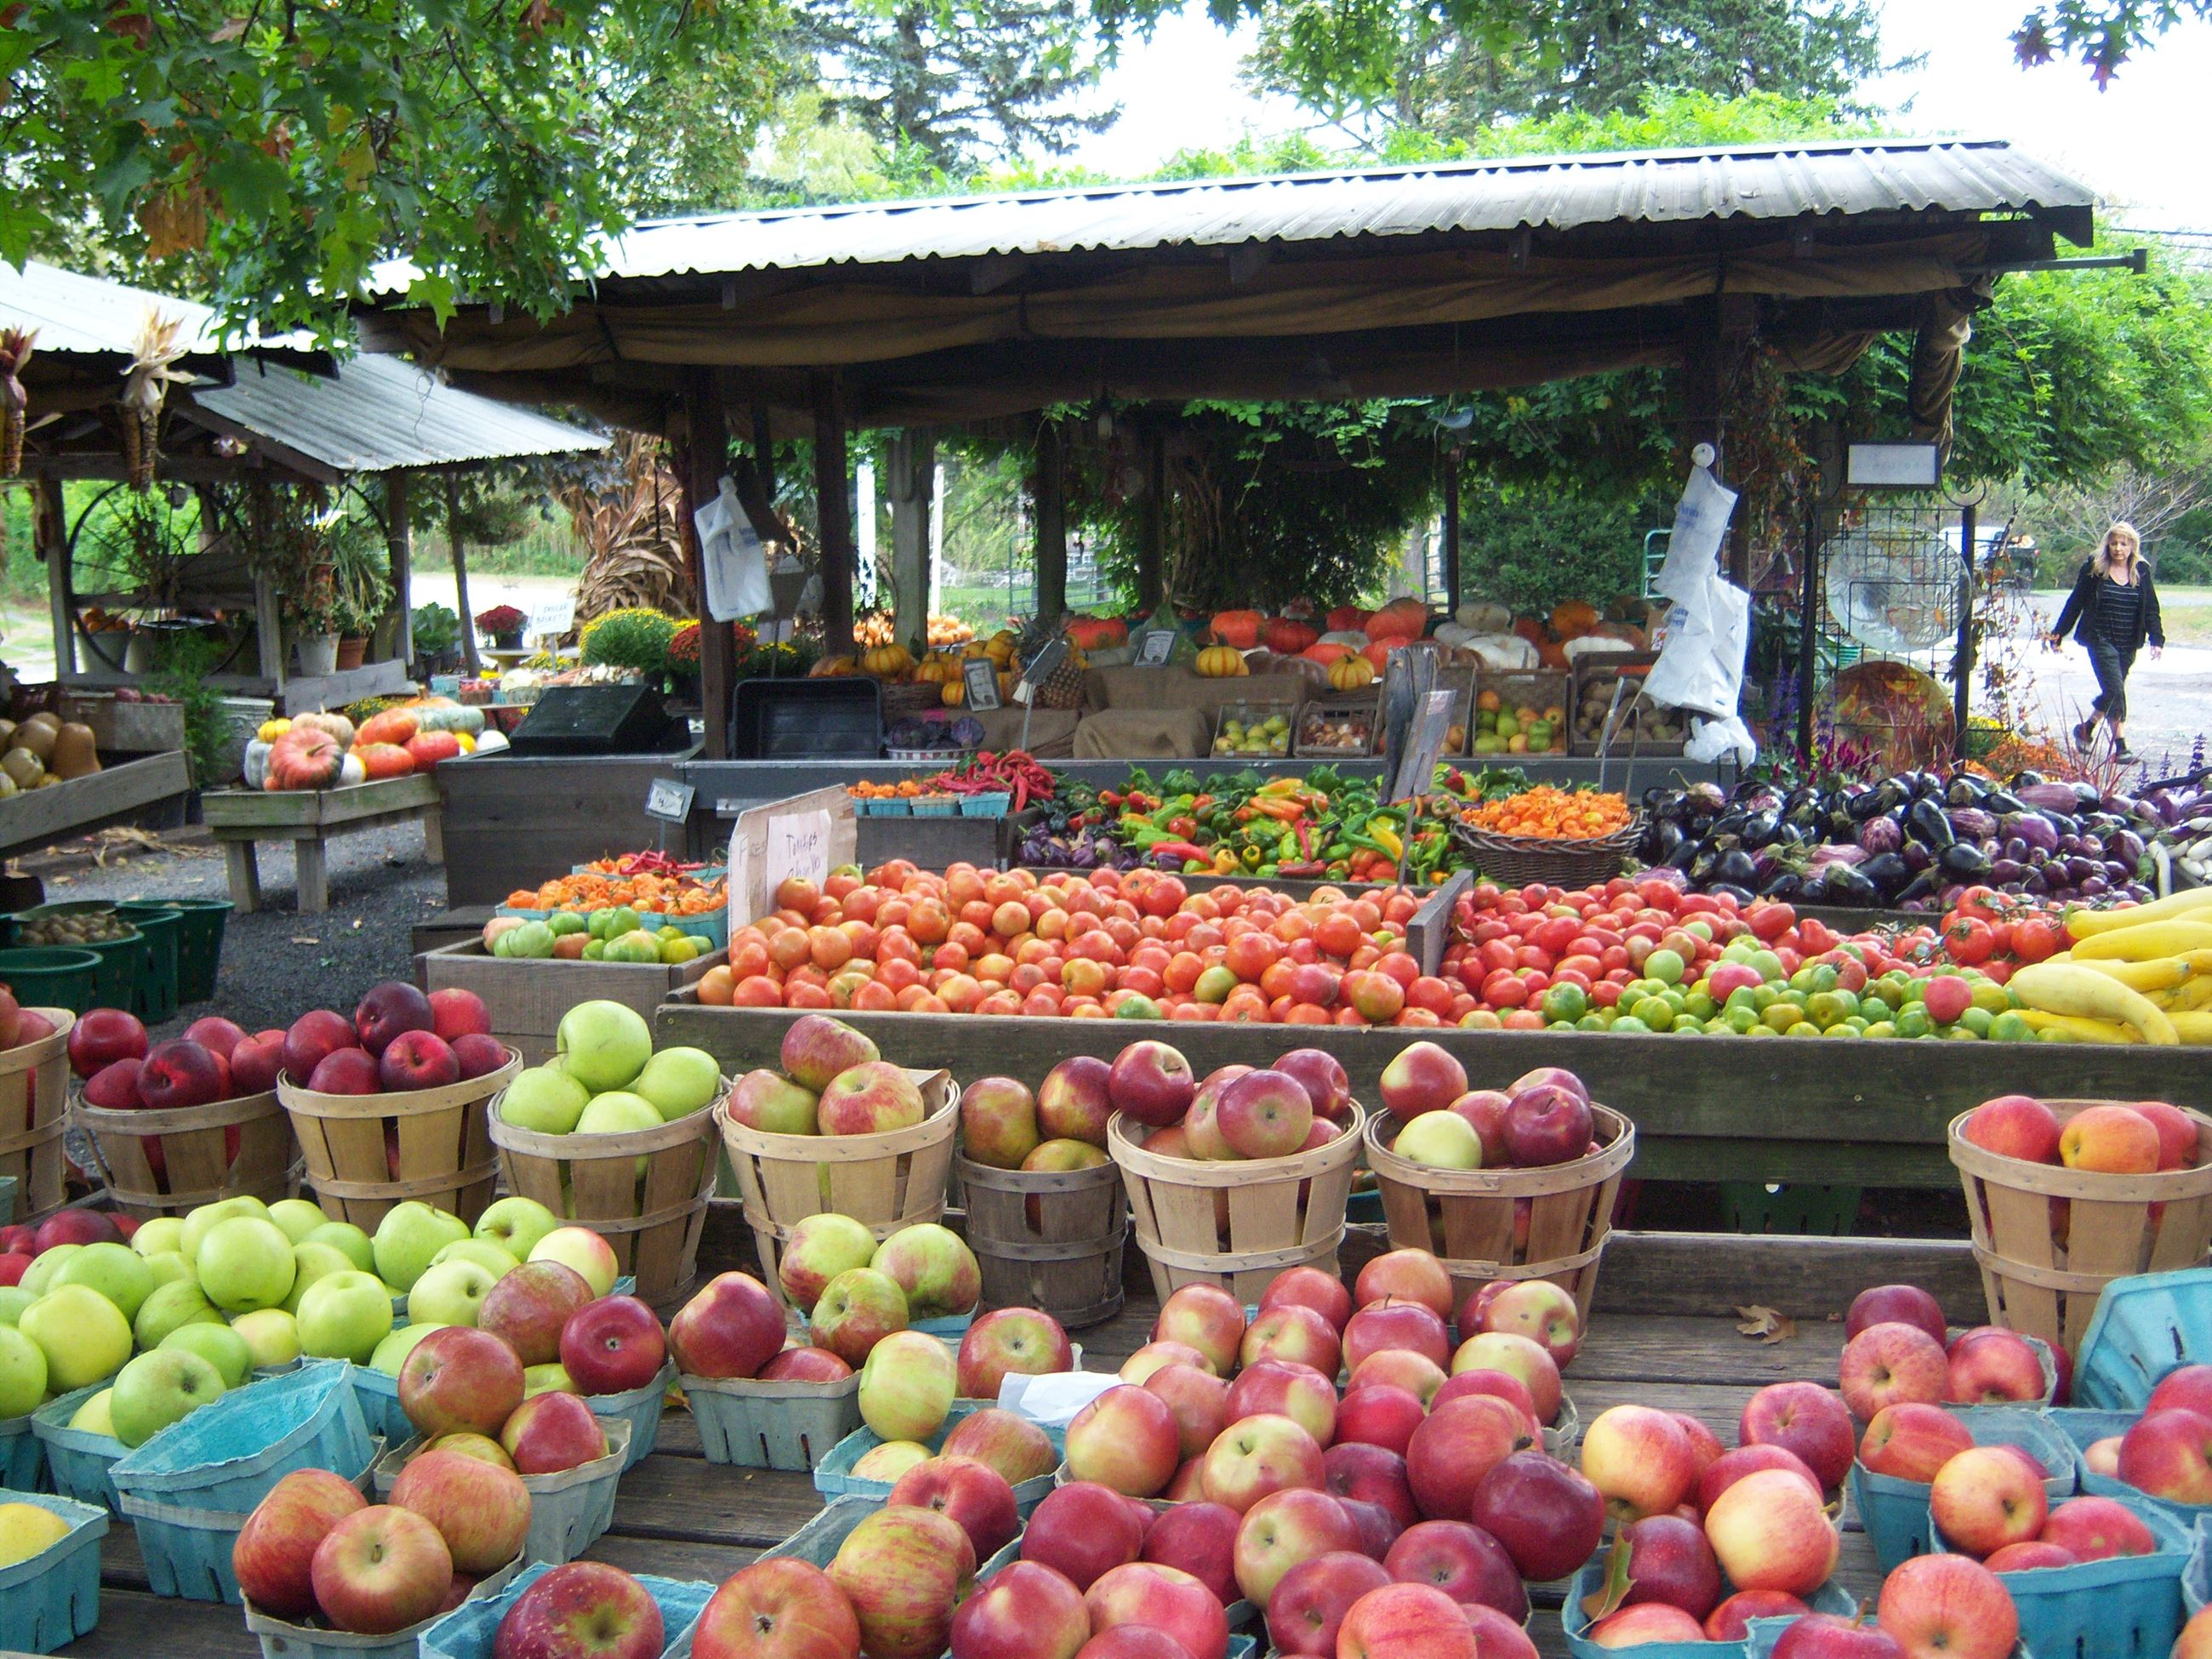 Farm stand selling produce